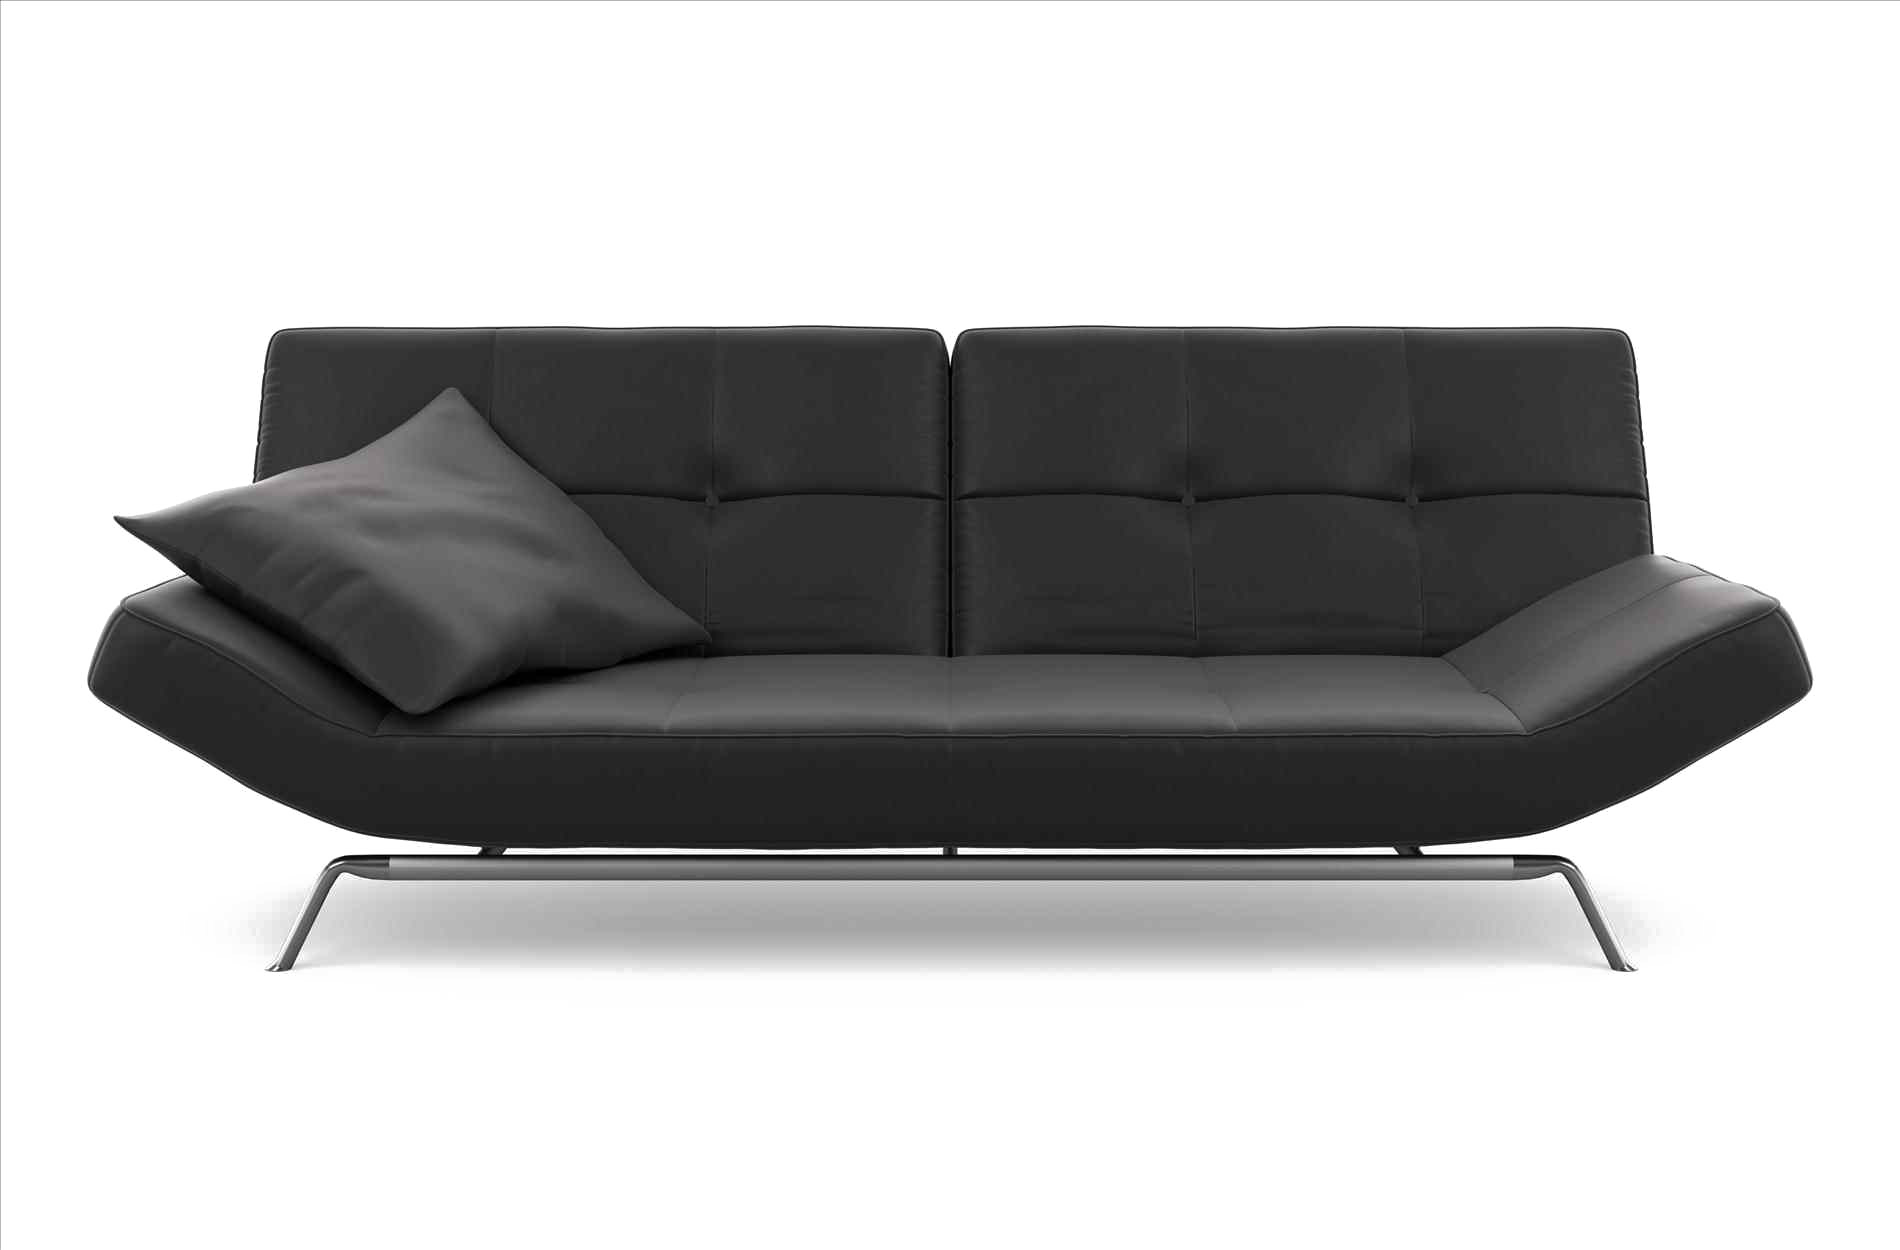 Couch png. Image mart